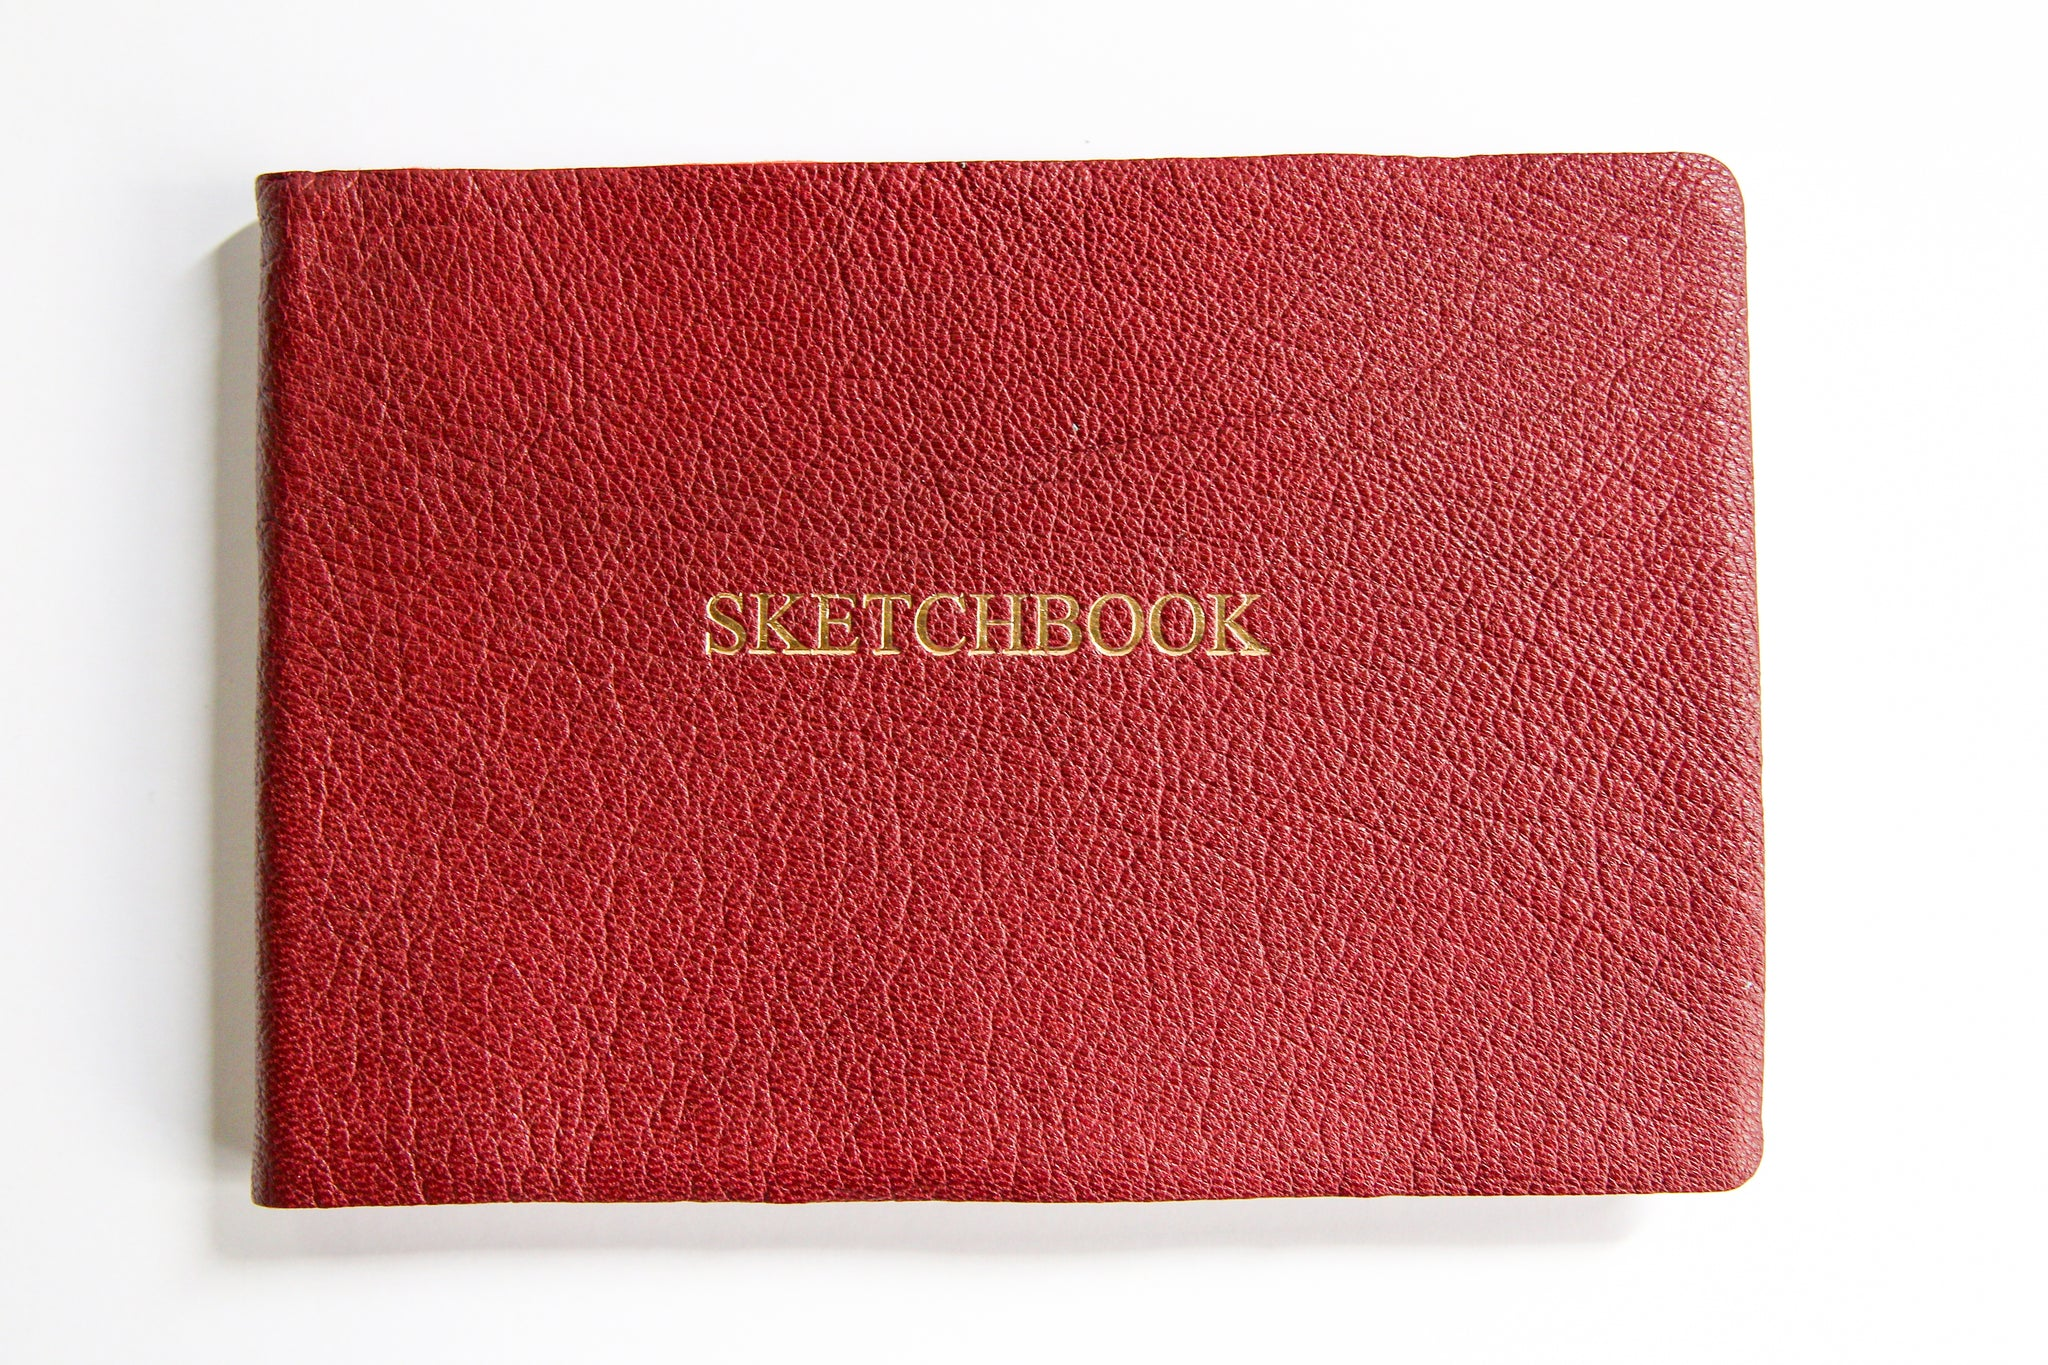 Pocket Sketch Book